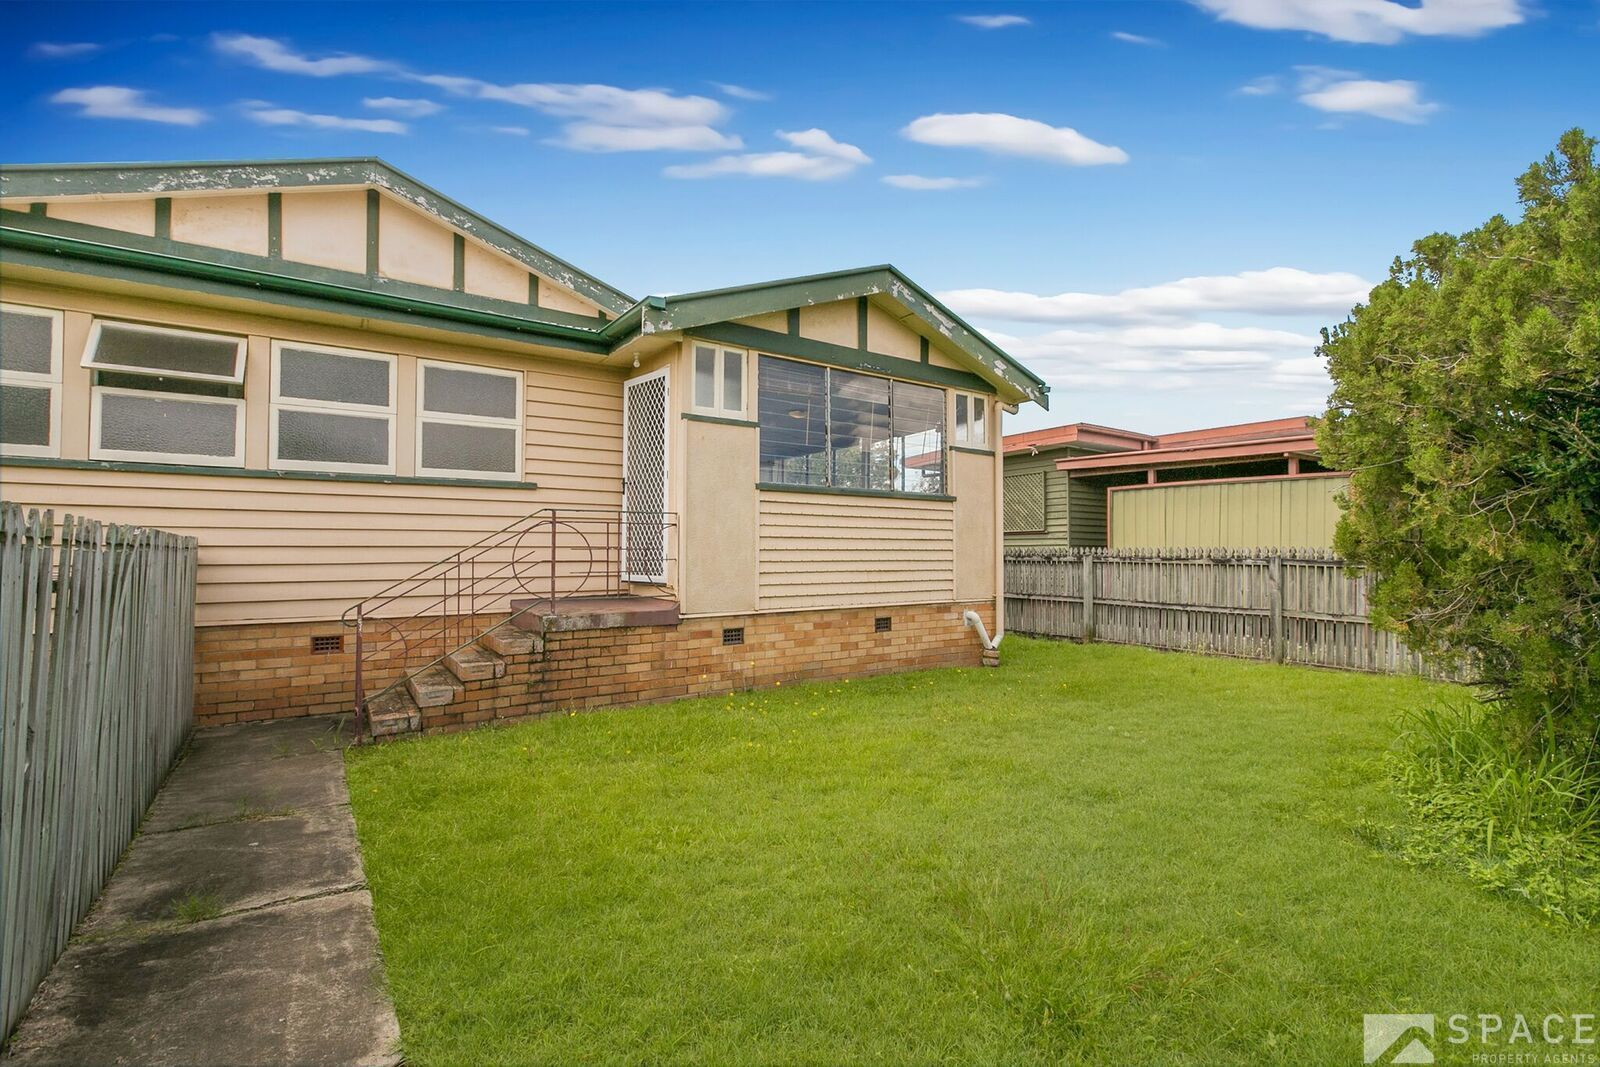 2/82 Raceview Avenue, Hendra QLD 4011, Image 0